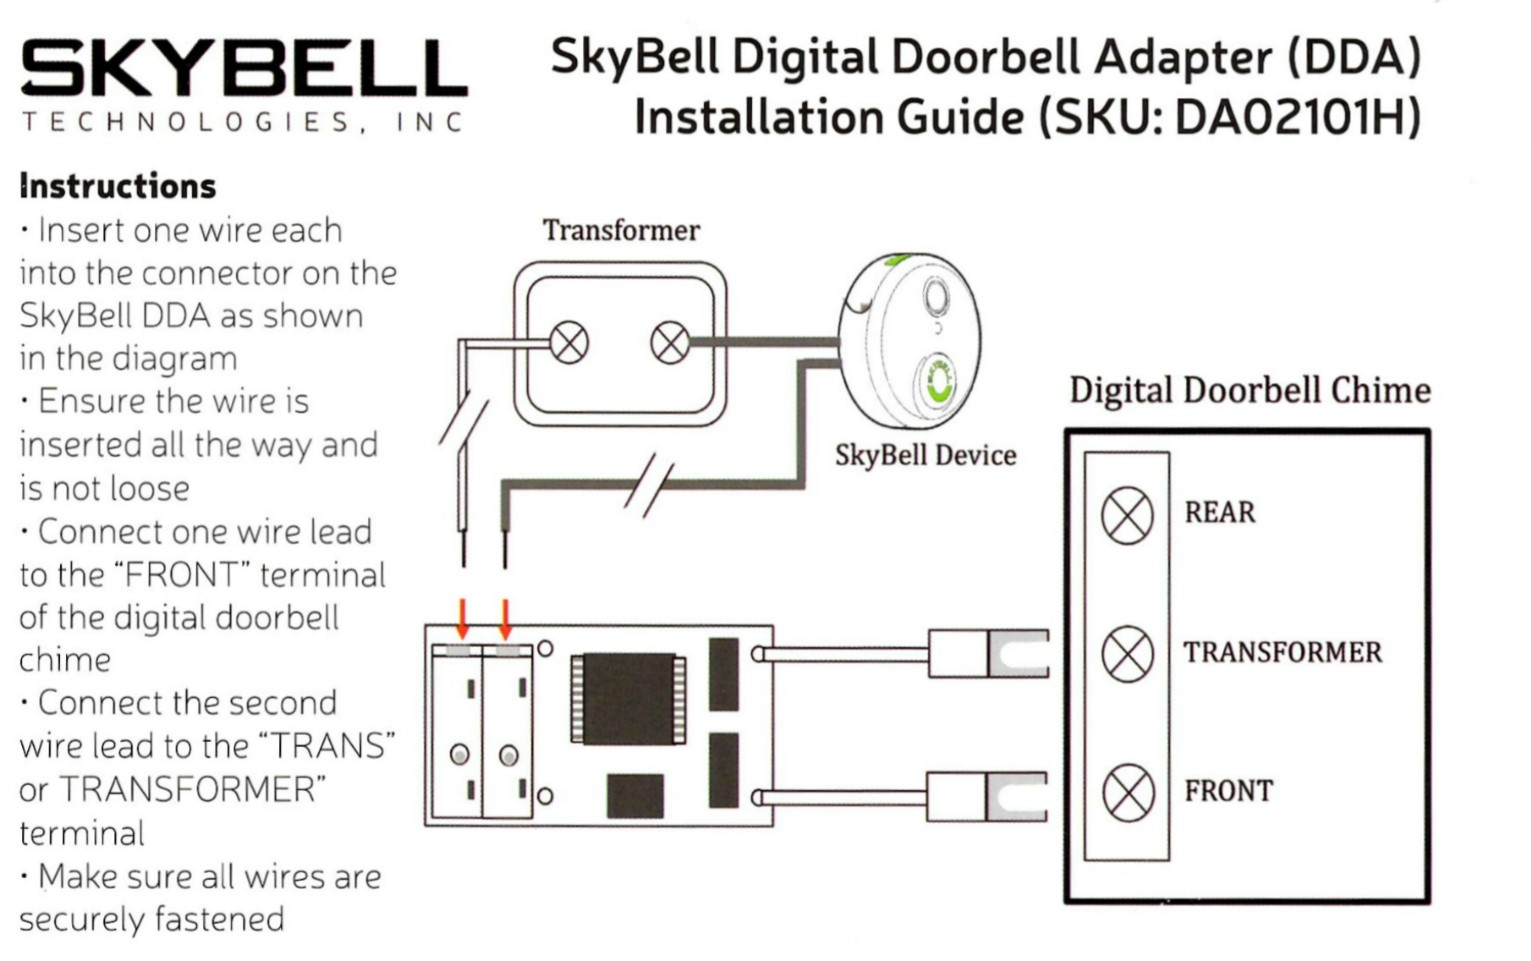 Do I Need A Digital Doorbell Adapter How Install It Skybell To Test Transformer Dda Instructions